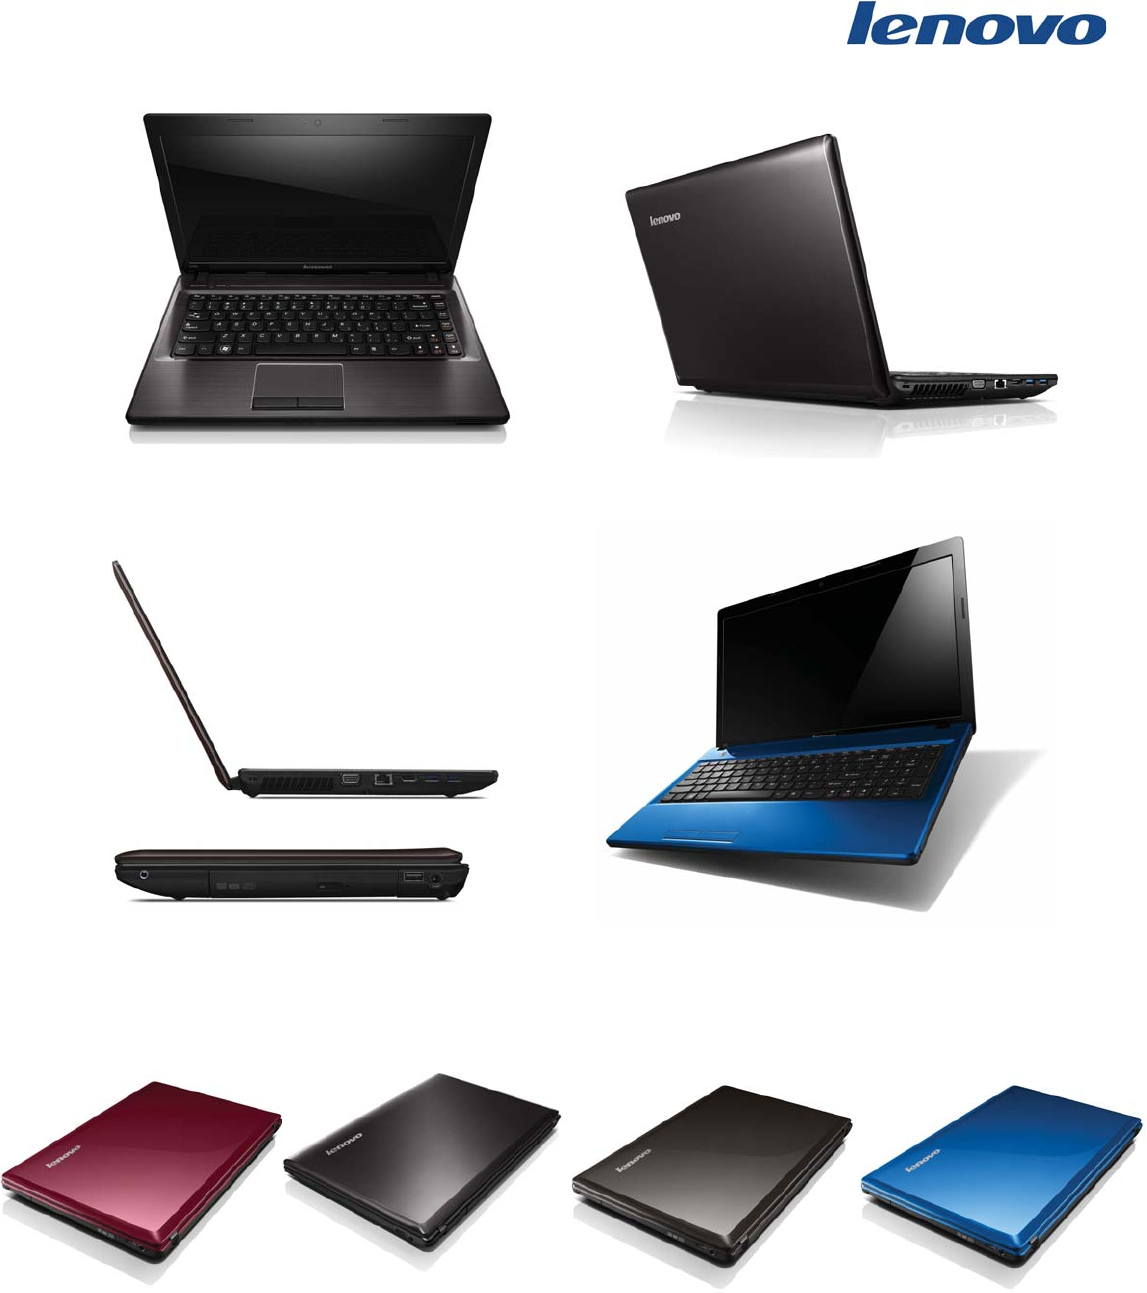 Lenovo 0679 Aju Essential Notebook User Manual To The 1c193f0d 4404 Switch Power Laptop G485 G480